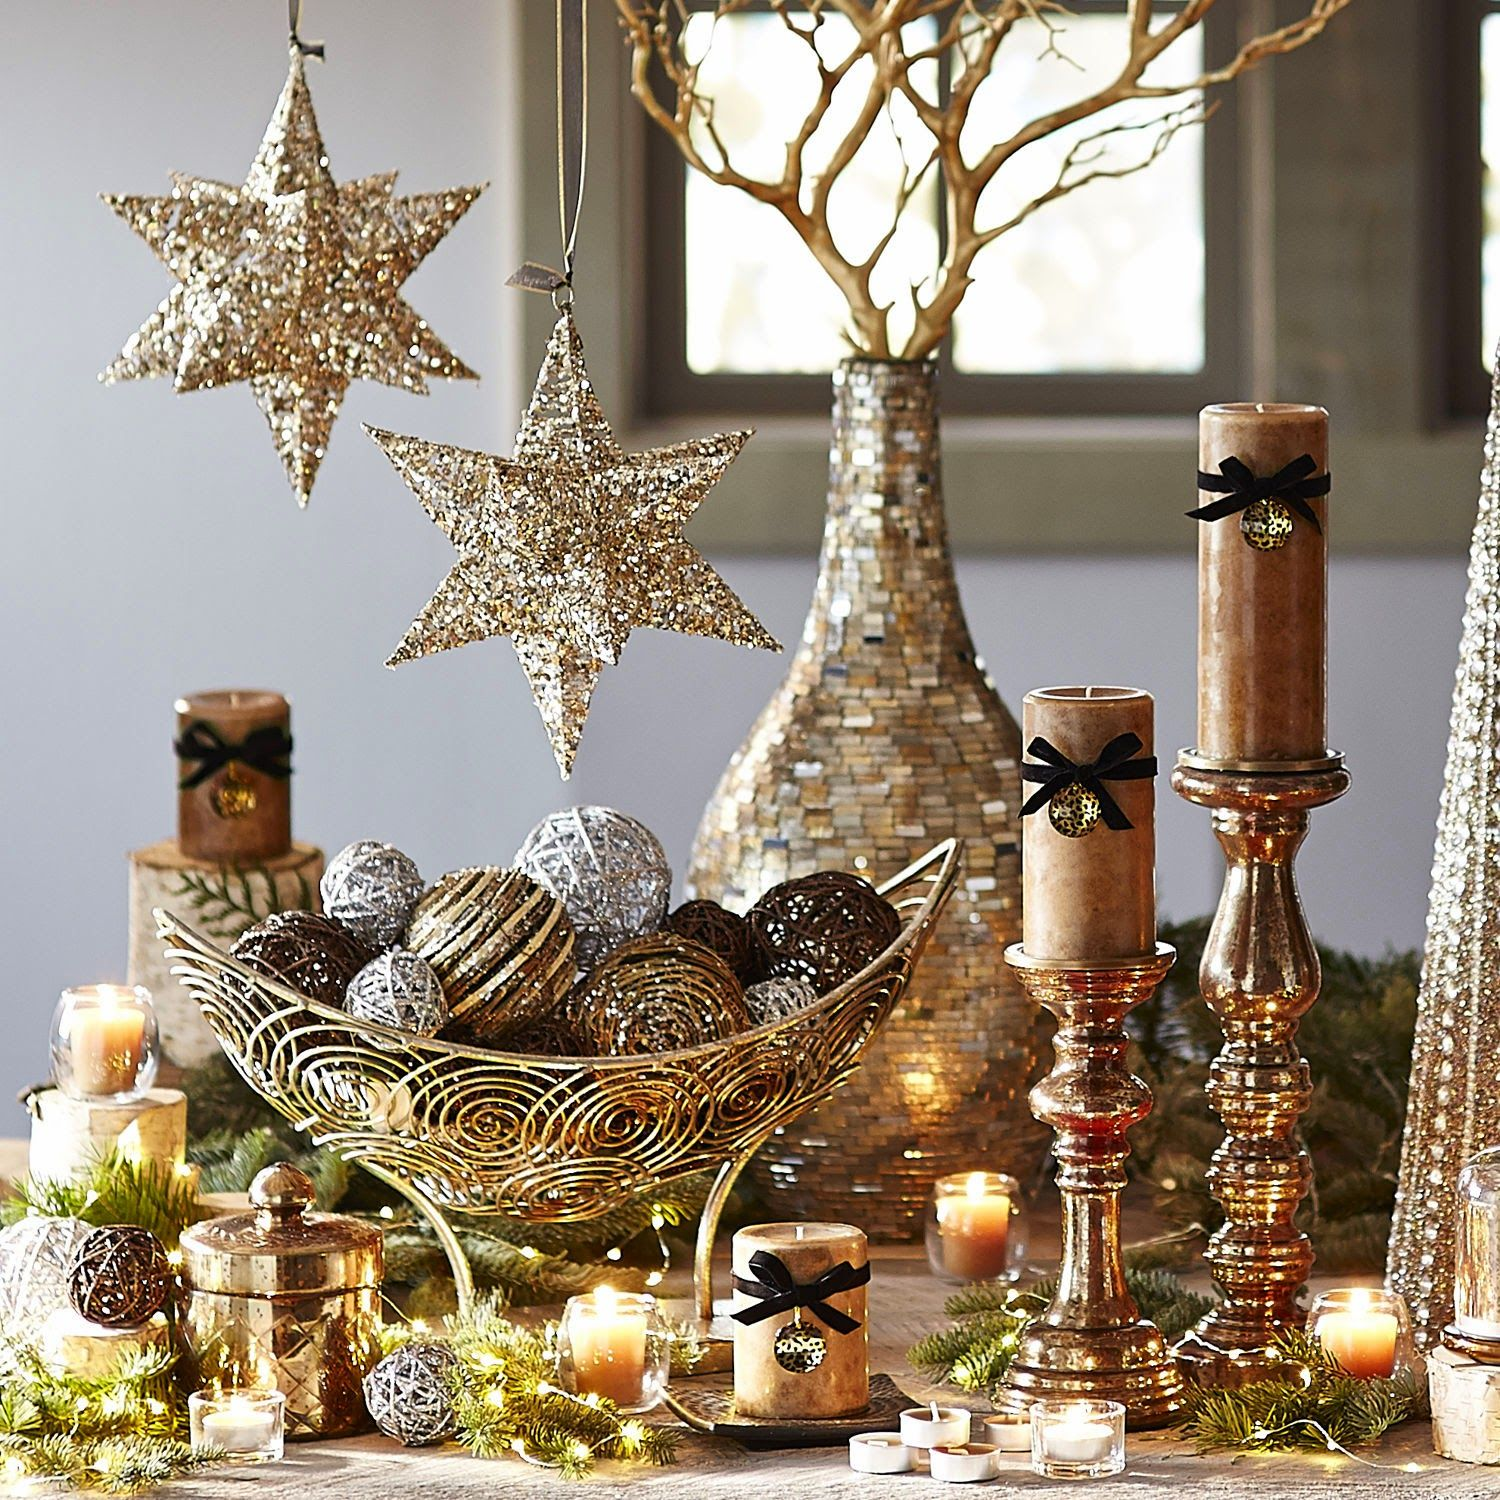 Pier One Imports Christmas Decorations – Decoration Image Idea